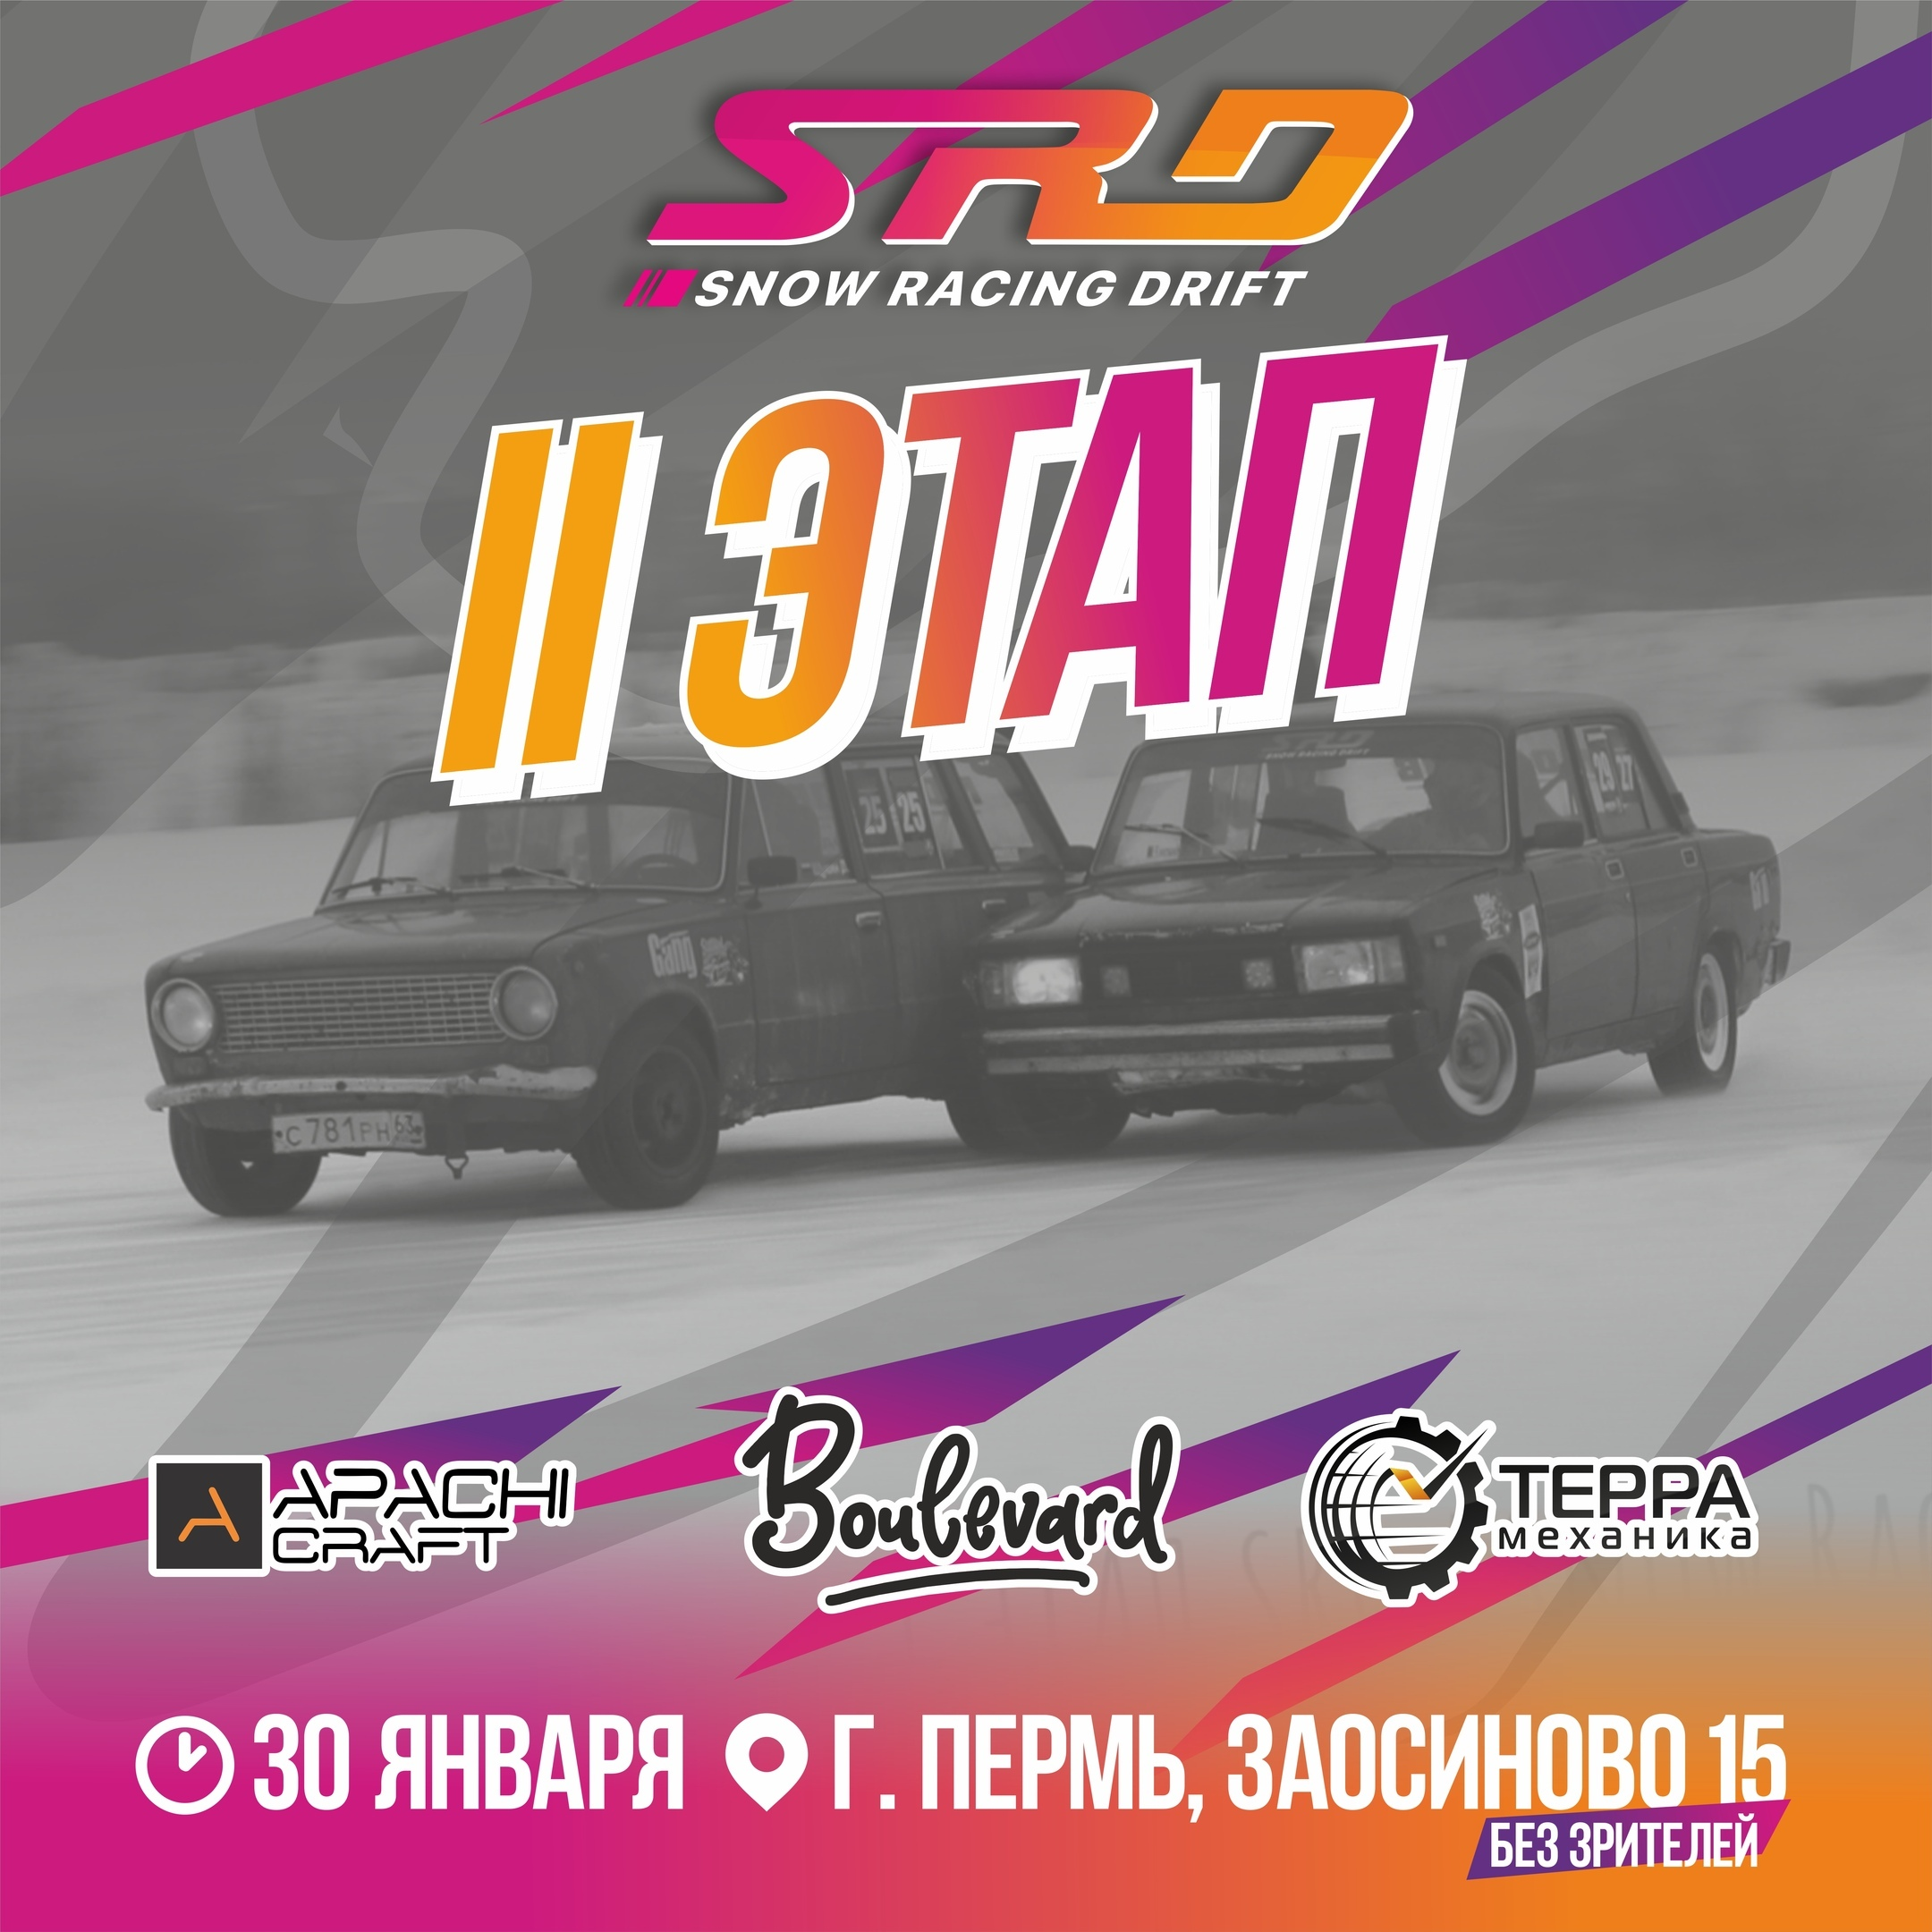 Пермь: 2 этап Snow Racing Drift / 30 января 2021